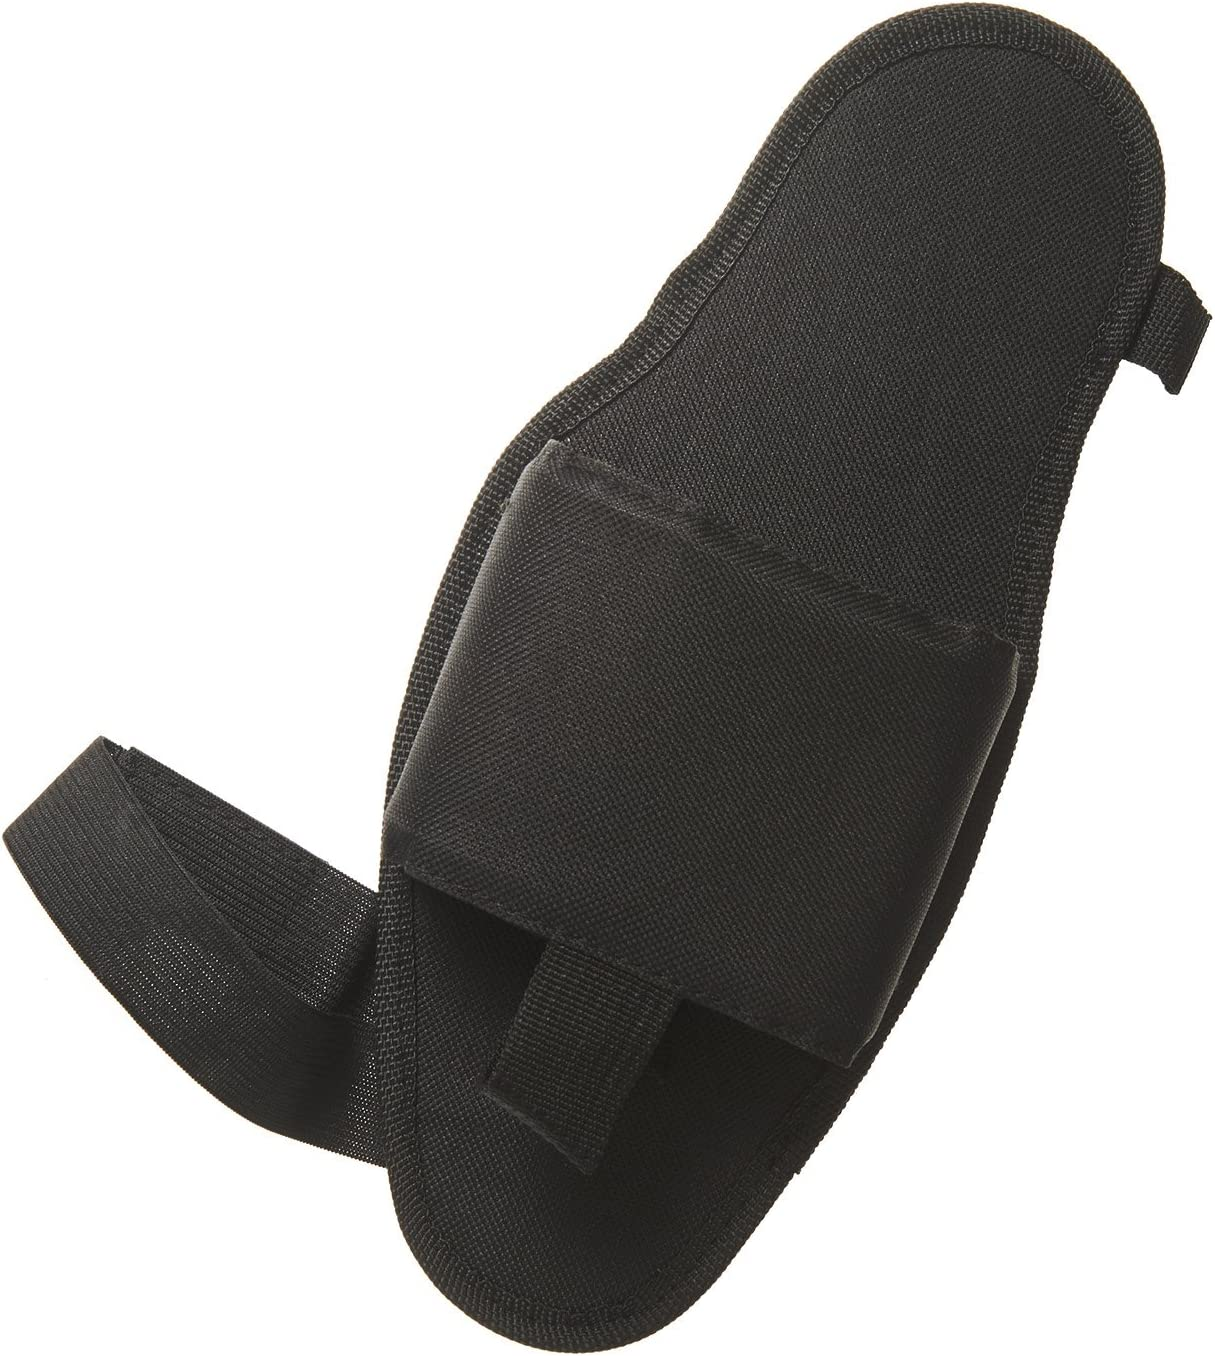 Holster Up Black Canvas Drink Holster. Black Portable Can or Bottle Carrier with ID Holder and Credit Card Pocket.